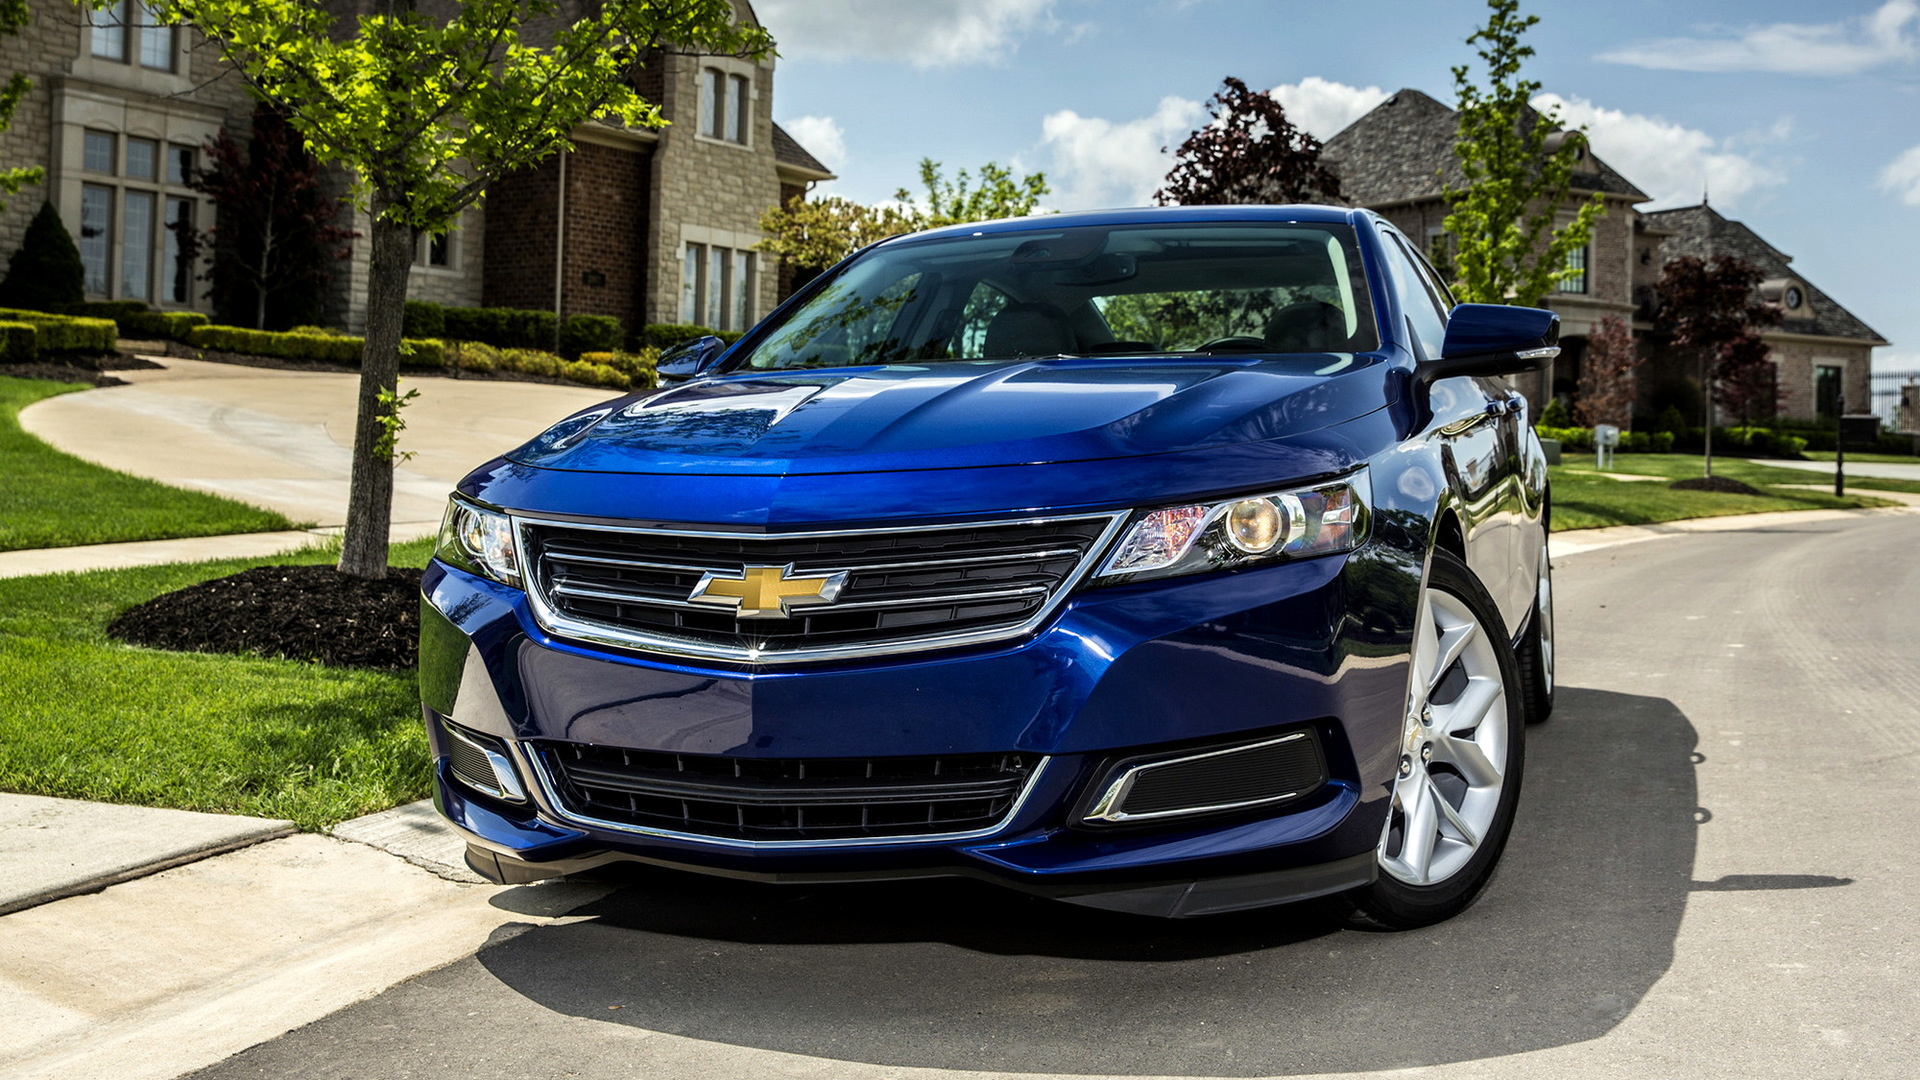 chevrolet impala lt 2013 wallpapers and hd images car pixel. Black Bedroom Furniture Sets. Home Design Ideas